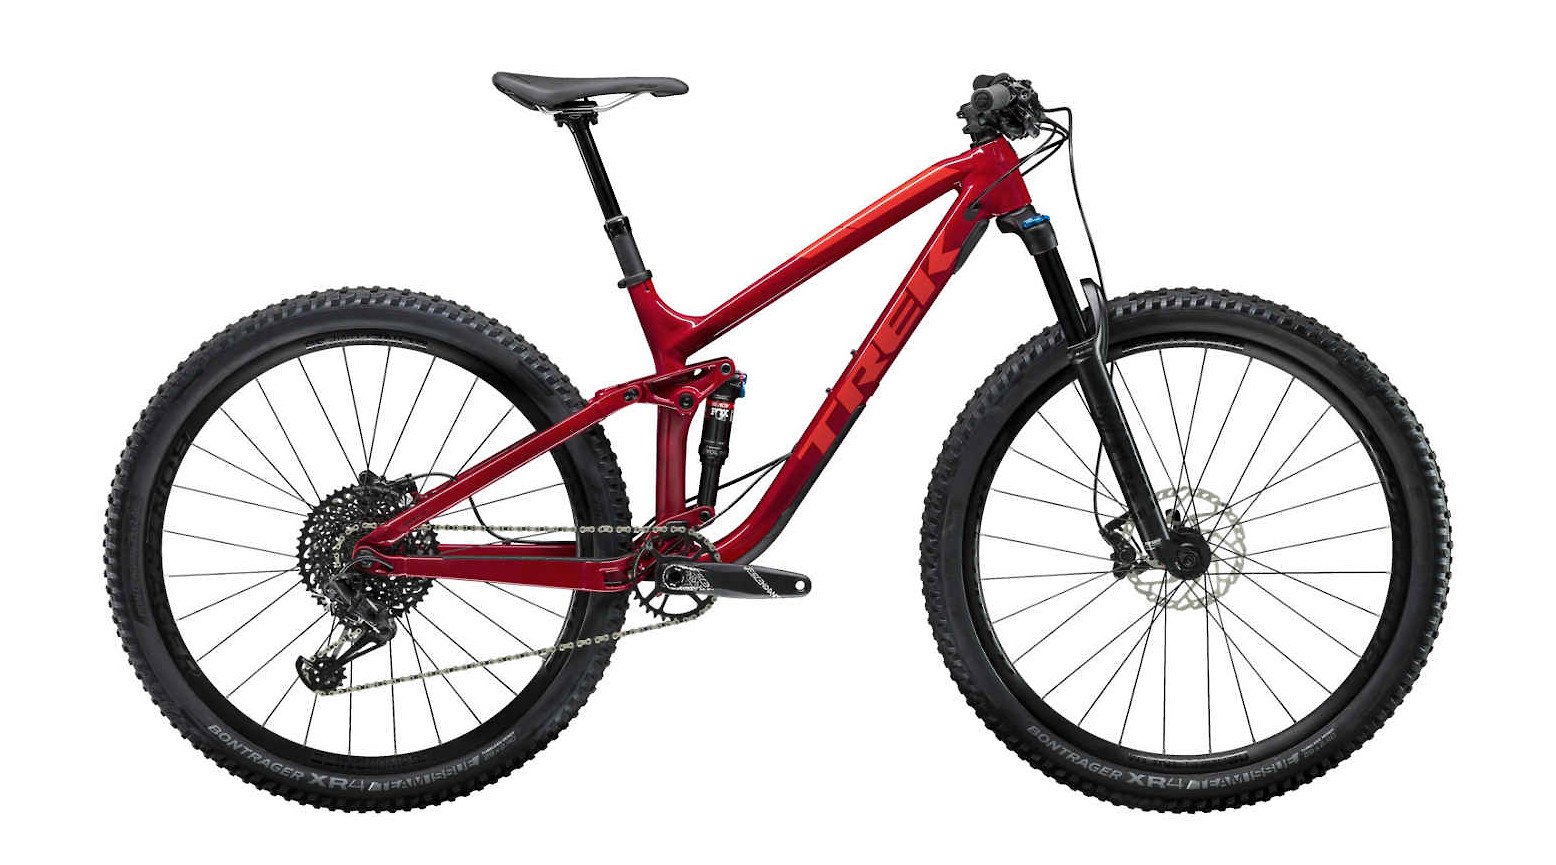 2019 Trek Fuel EX 8 29 Bike - Reviews, Comparisons, Specs ...